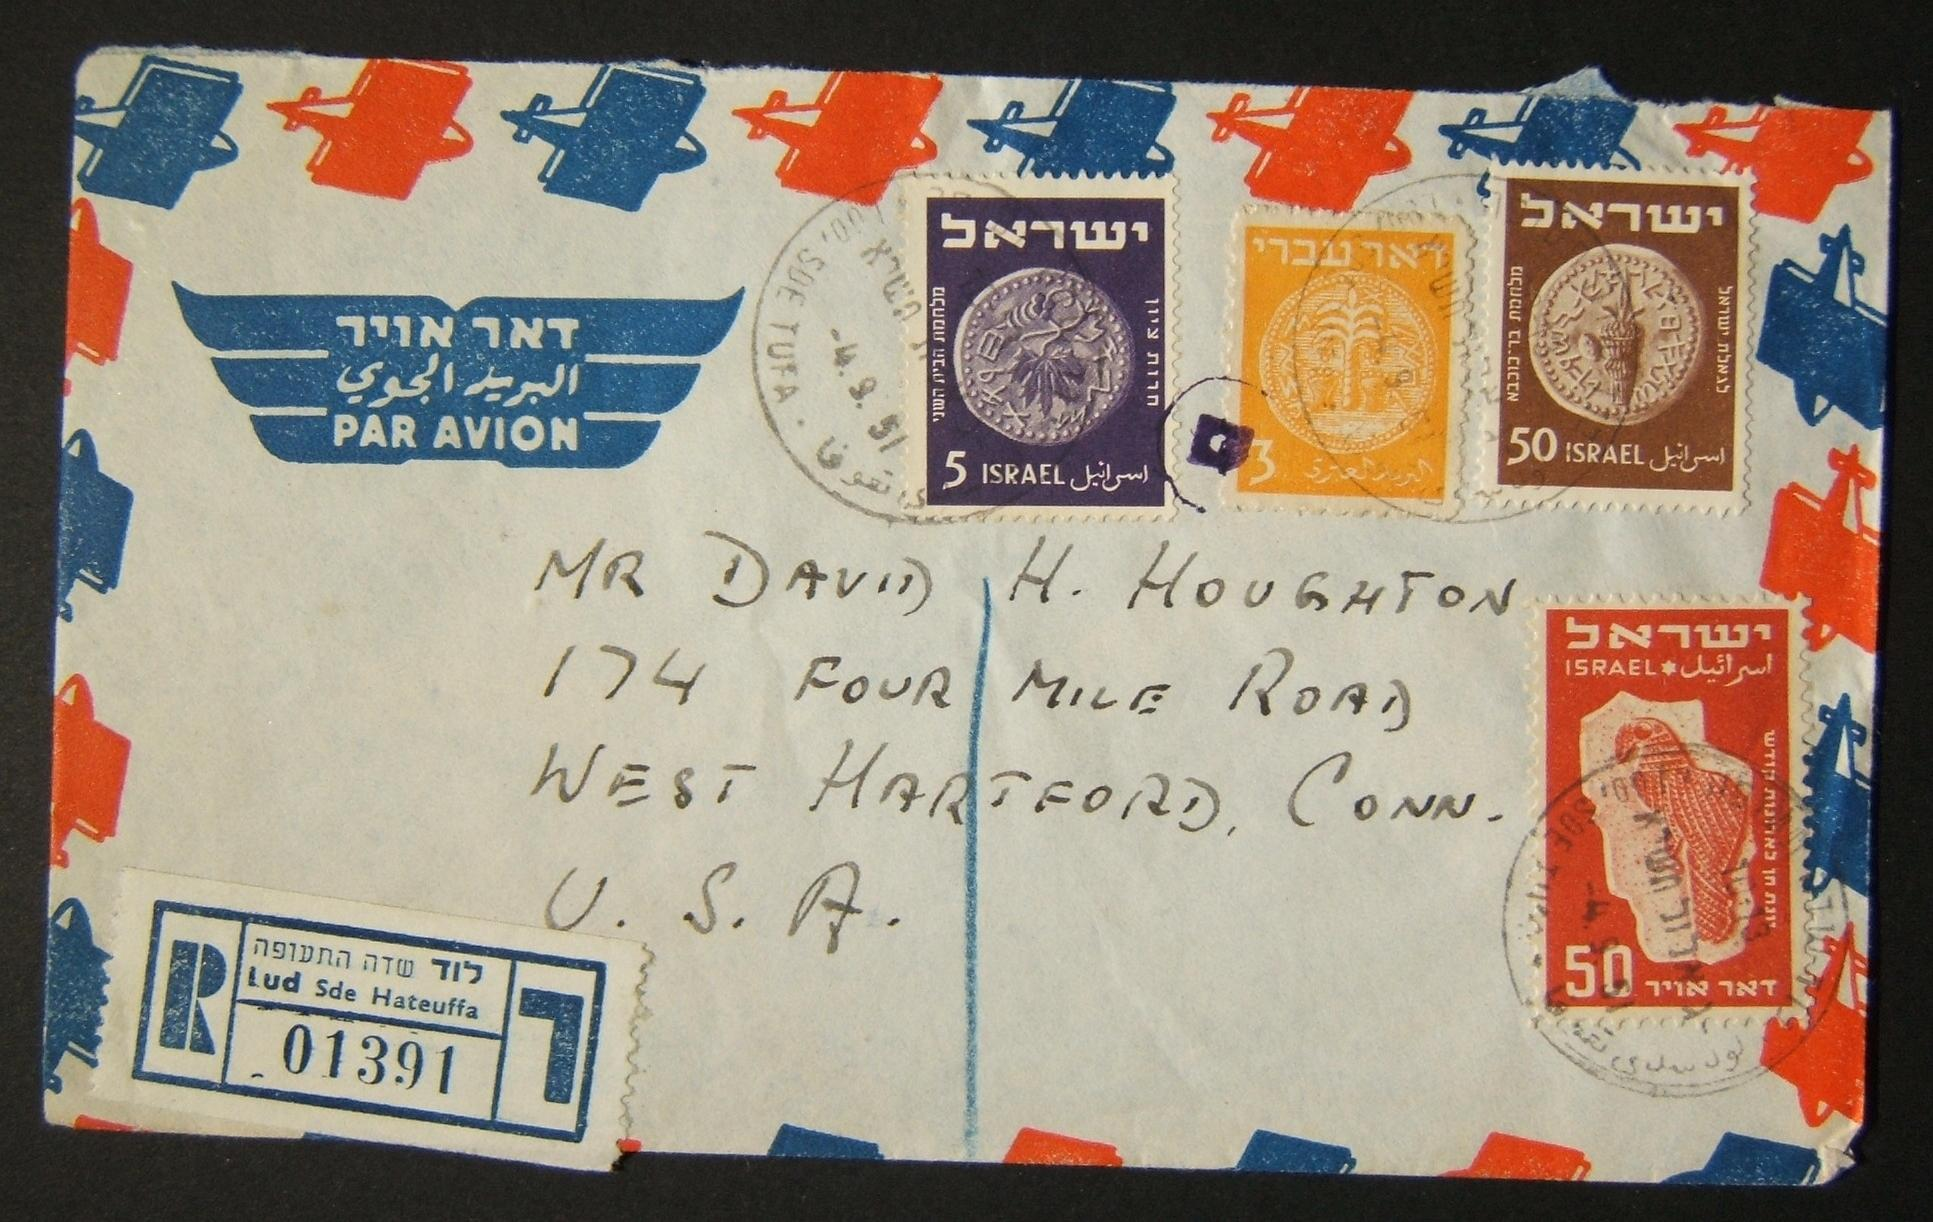 1950 1st airmail / PO's, rates & routes: 4-9-1951 registered Israeli airmail stationary cover ex LUDD SDE TUFA (Lod Airport) to WEST HARTFORD franked 108pr at the FA-2a period rate